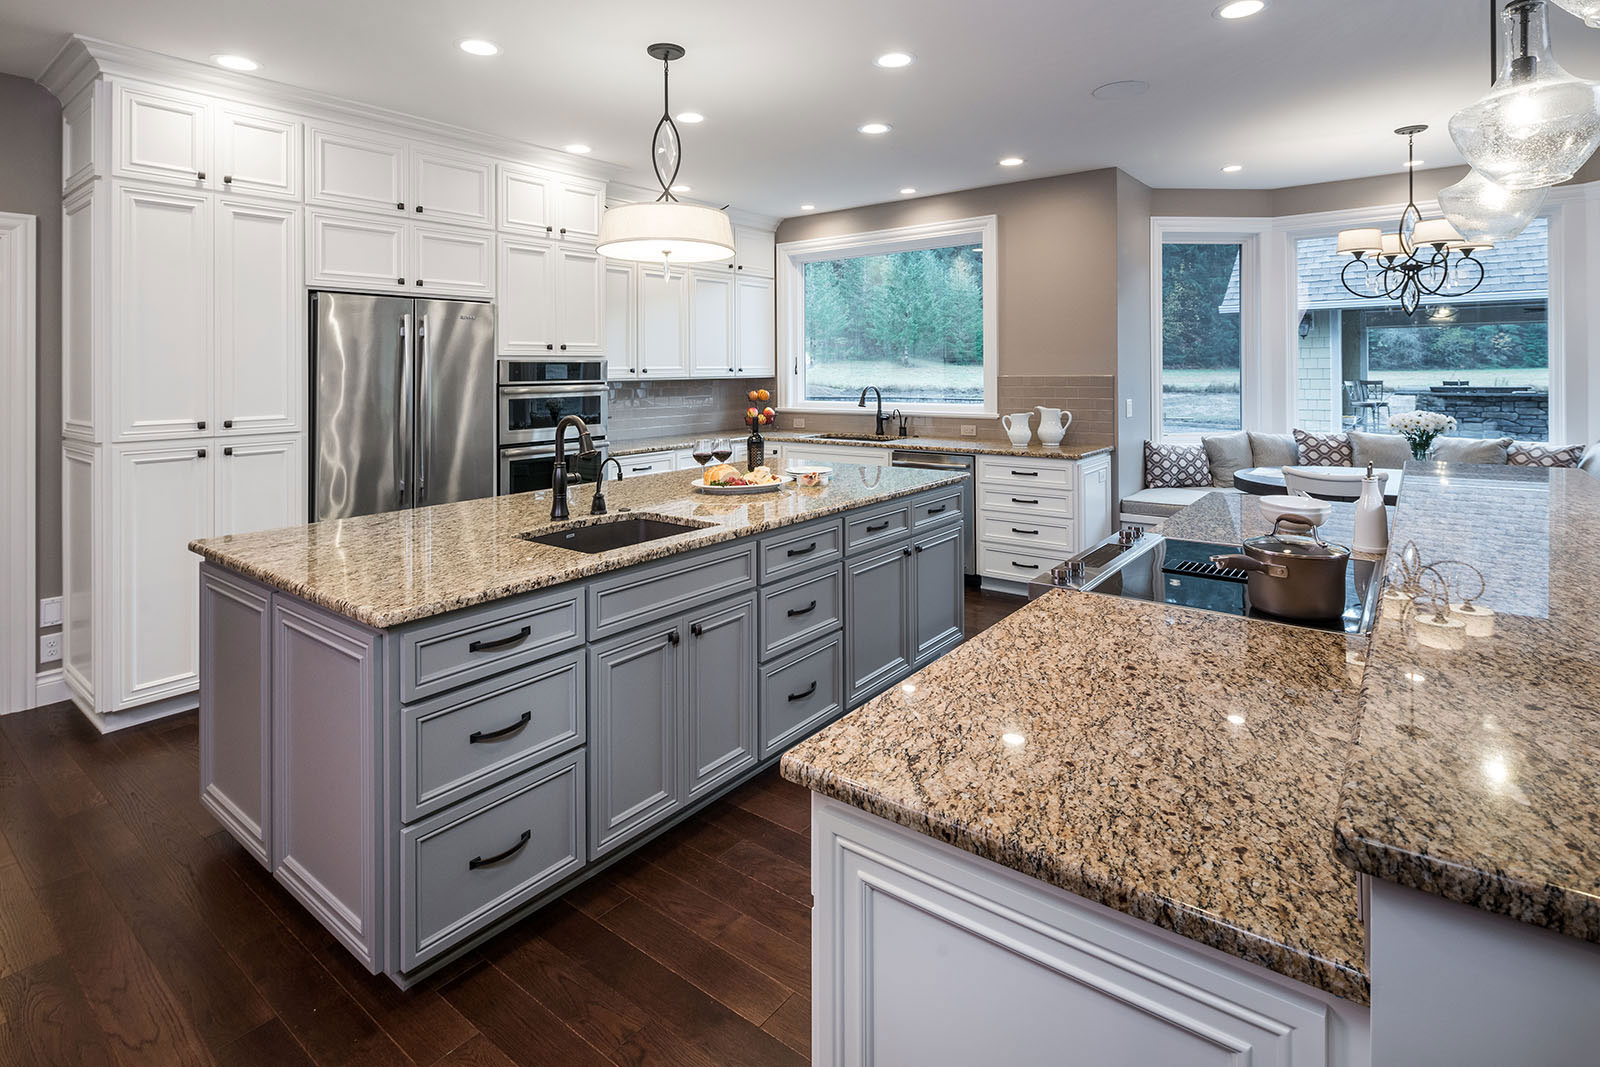 custom home design - Henderer Design + Build, Corvallis OR